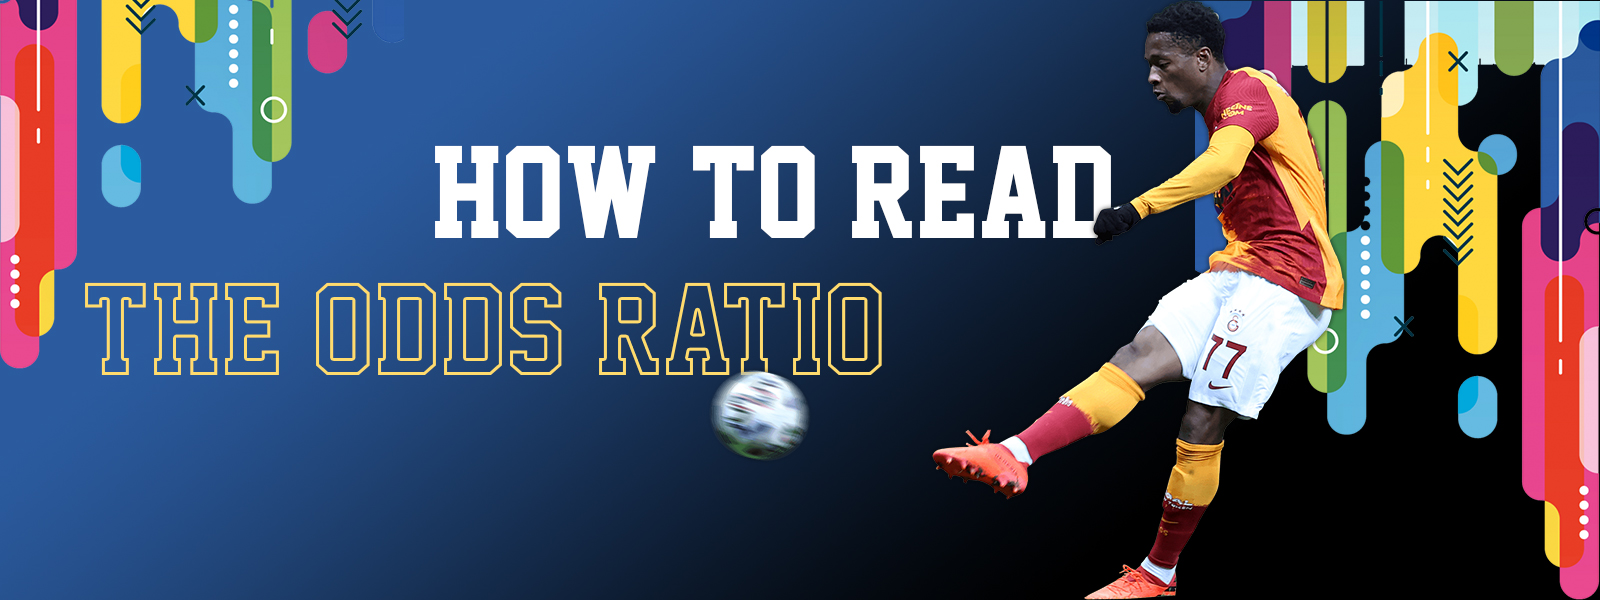 Learn How To Read The Betting Odds Ratio